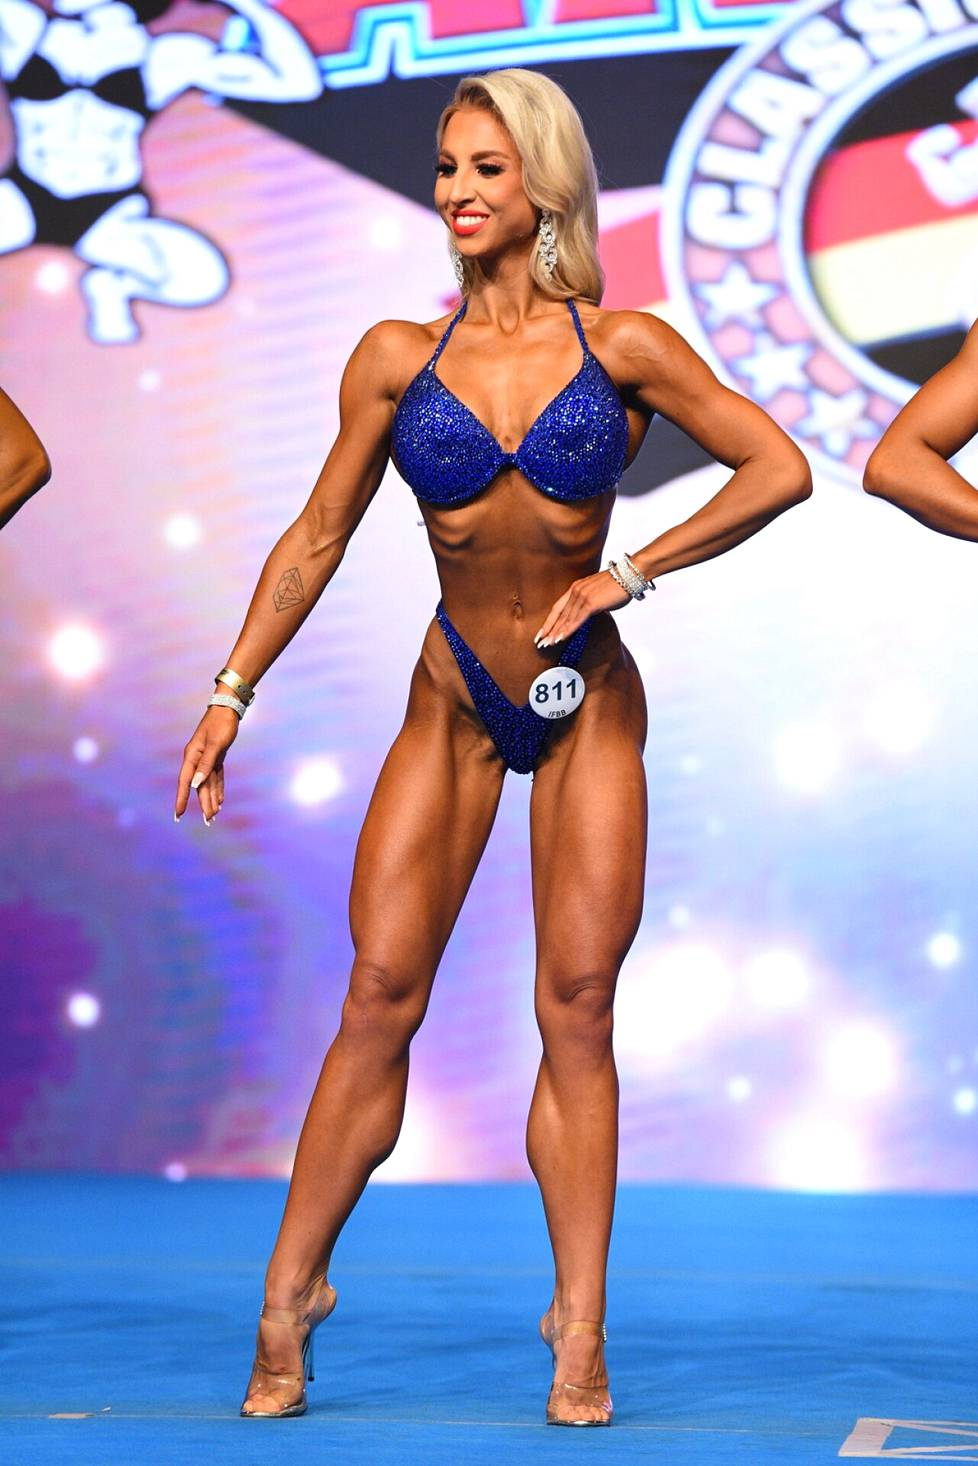 In Arnold Classic Europe, Rosa Paloperä grabbed first place.